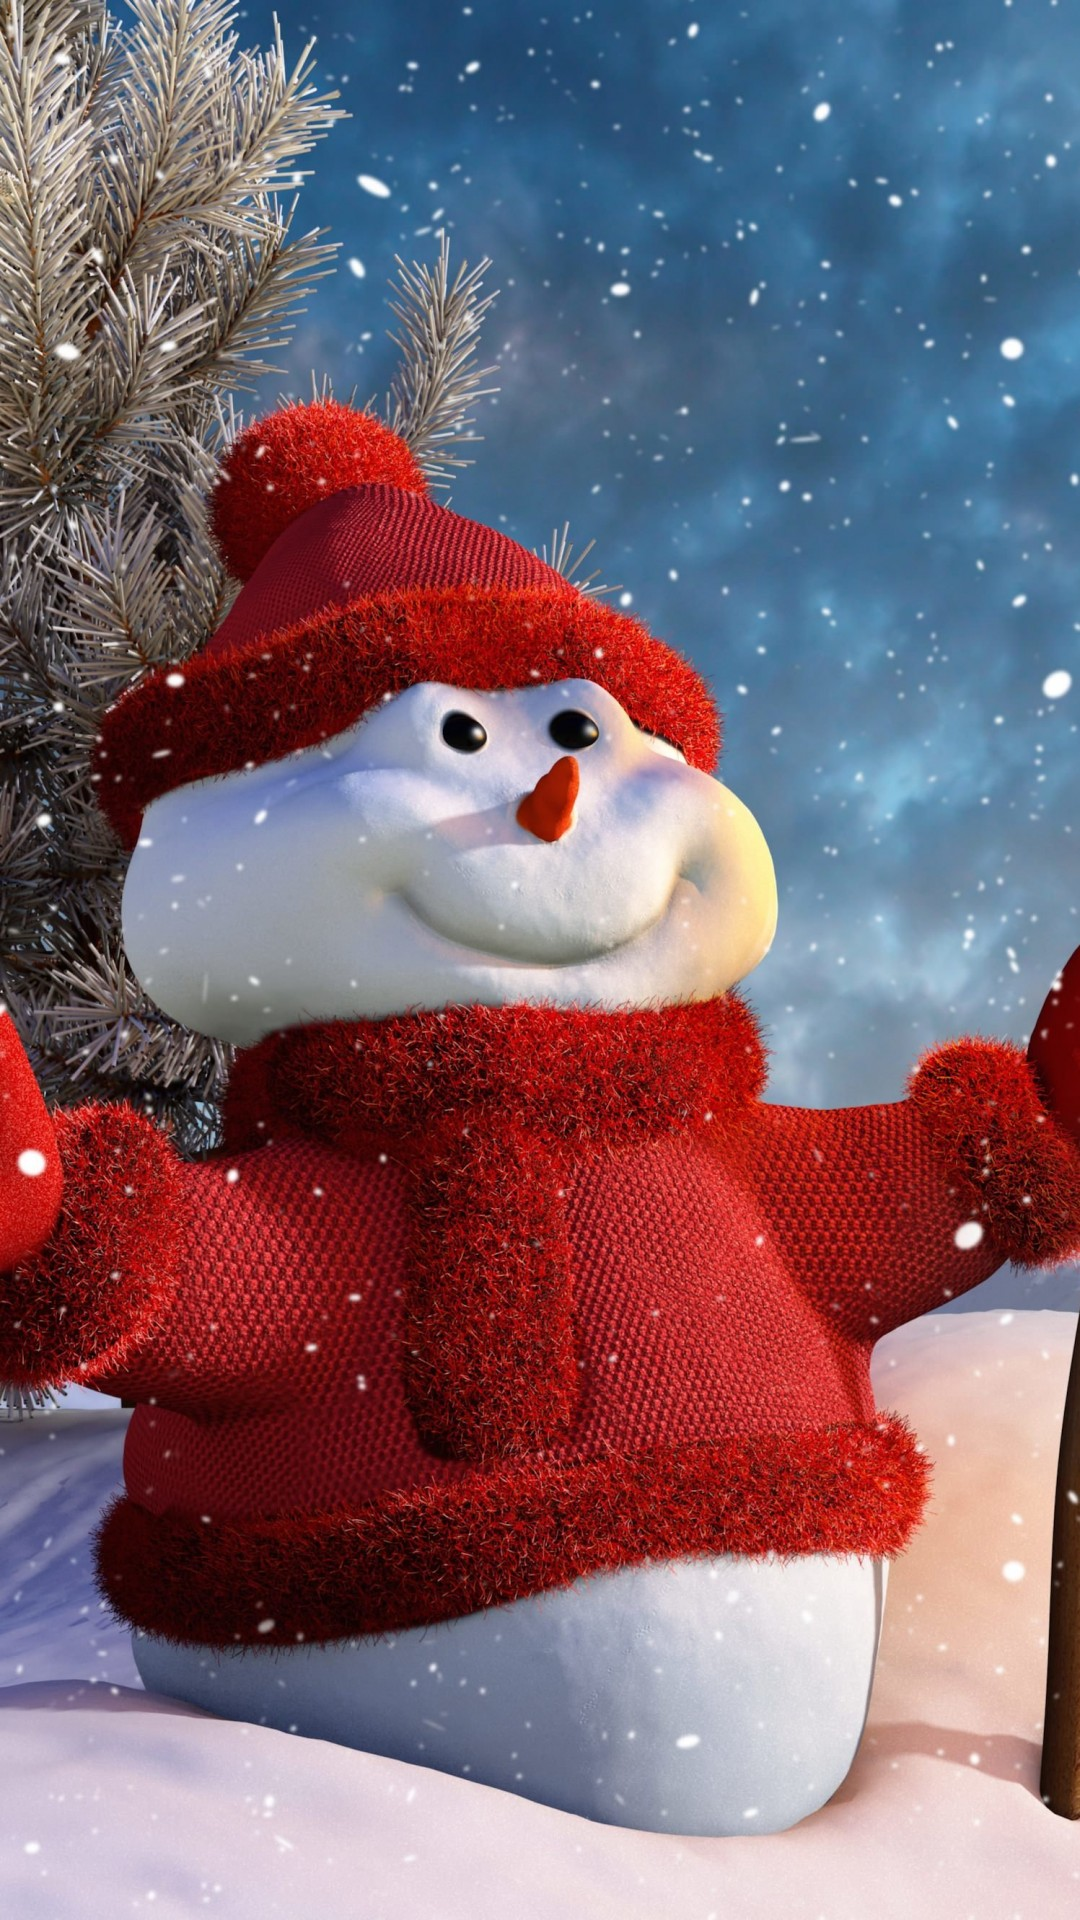 Christmas Snowman Wallpaper for HTC One